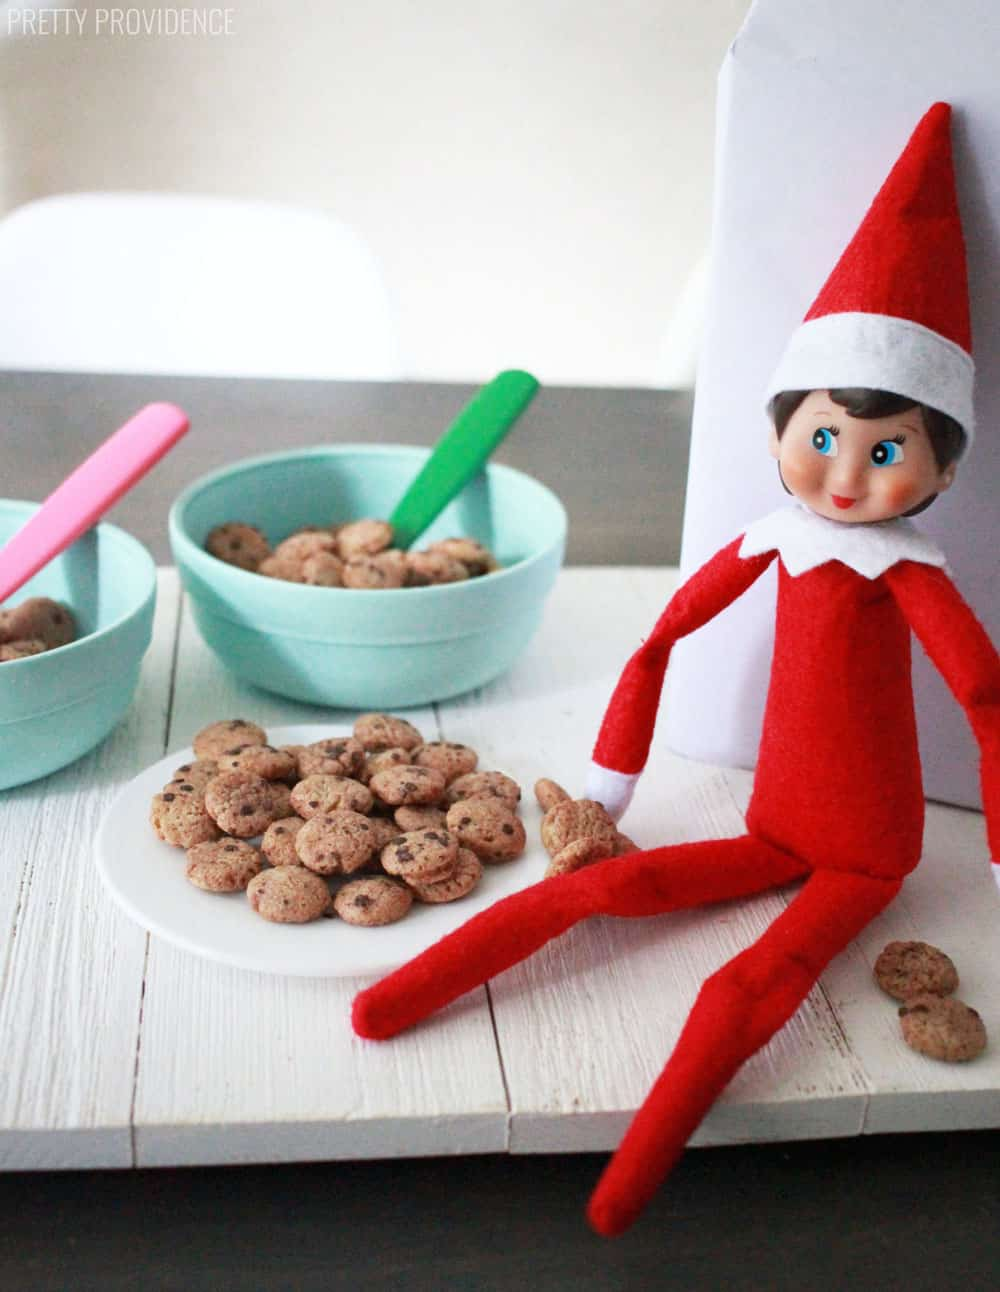 Elf on the Shelf Makes Cookies for Breakfast